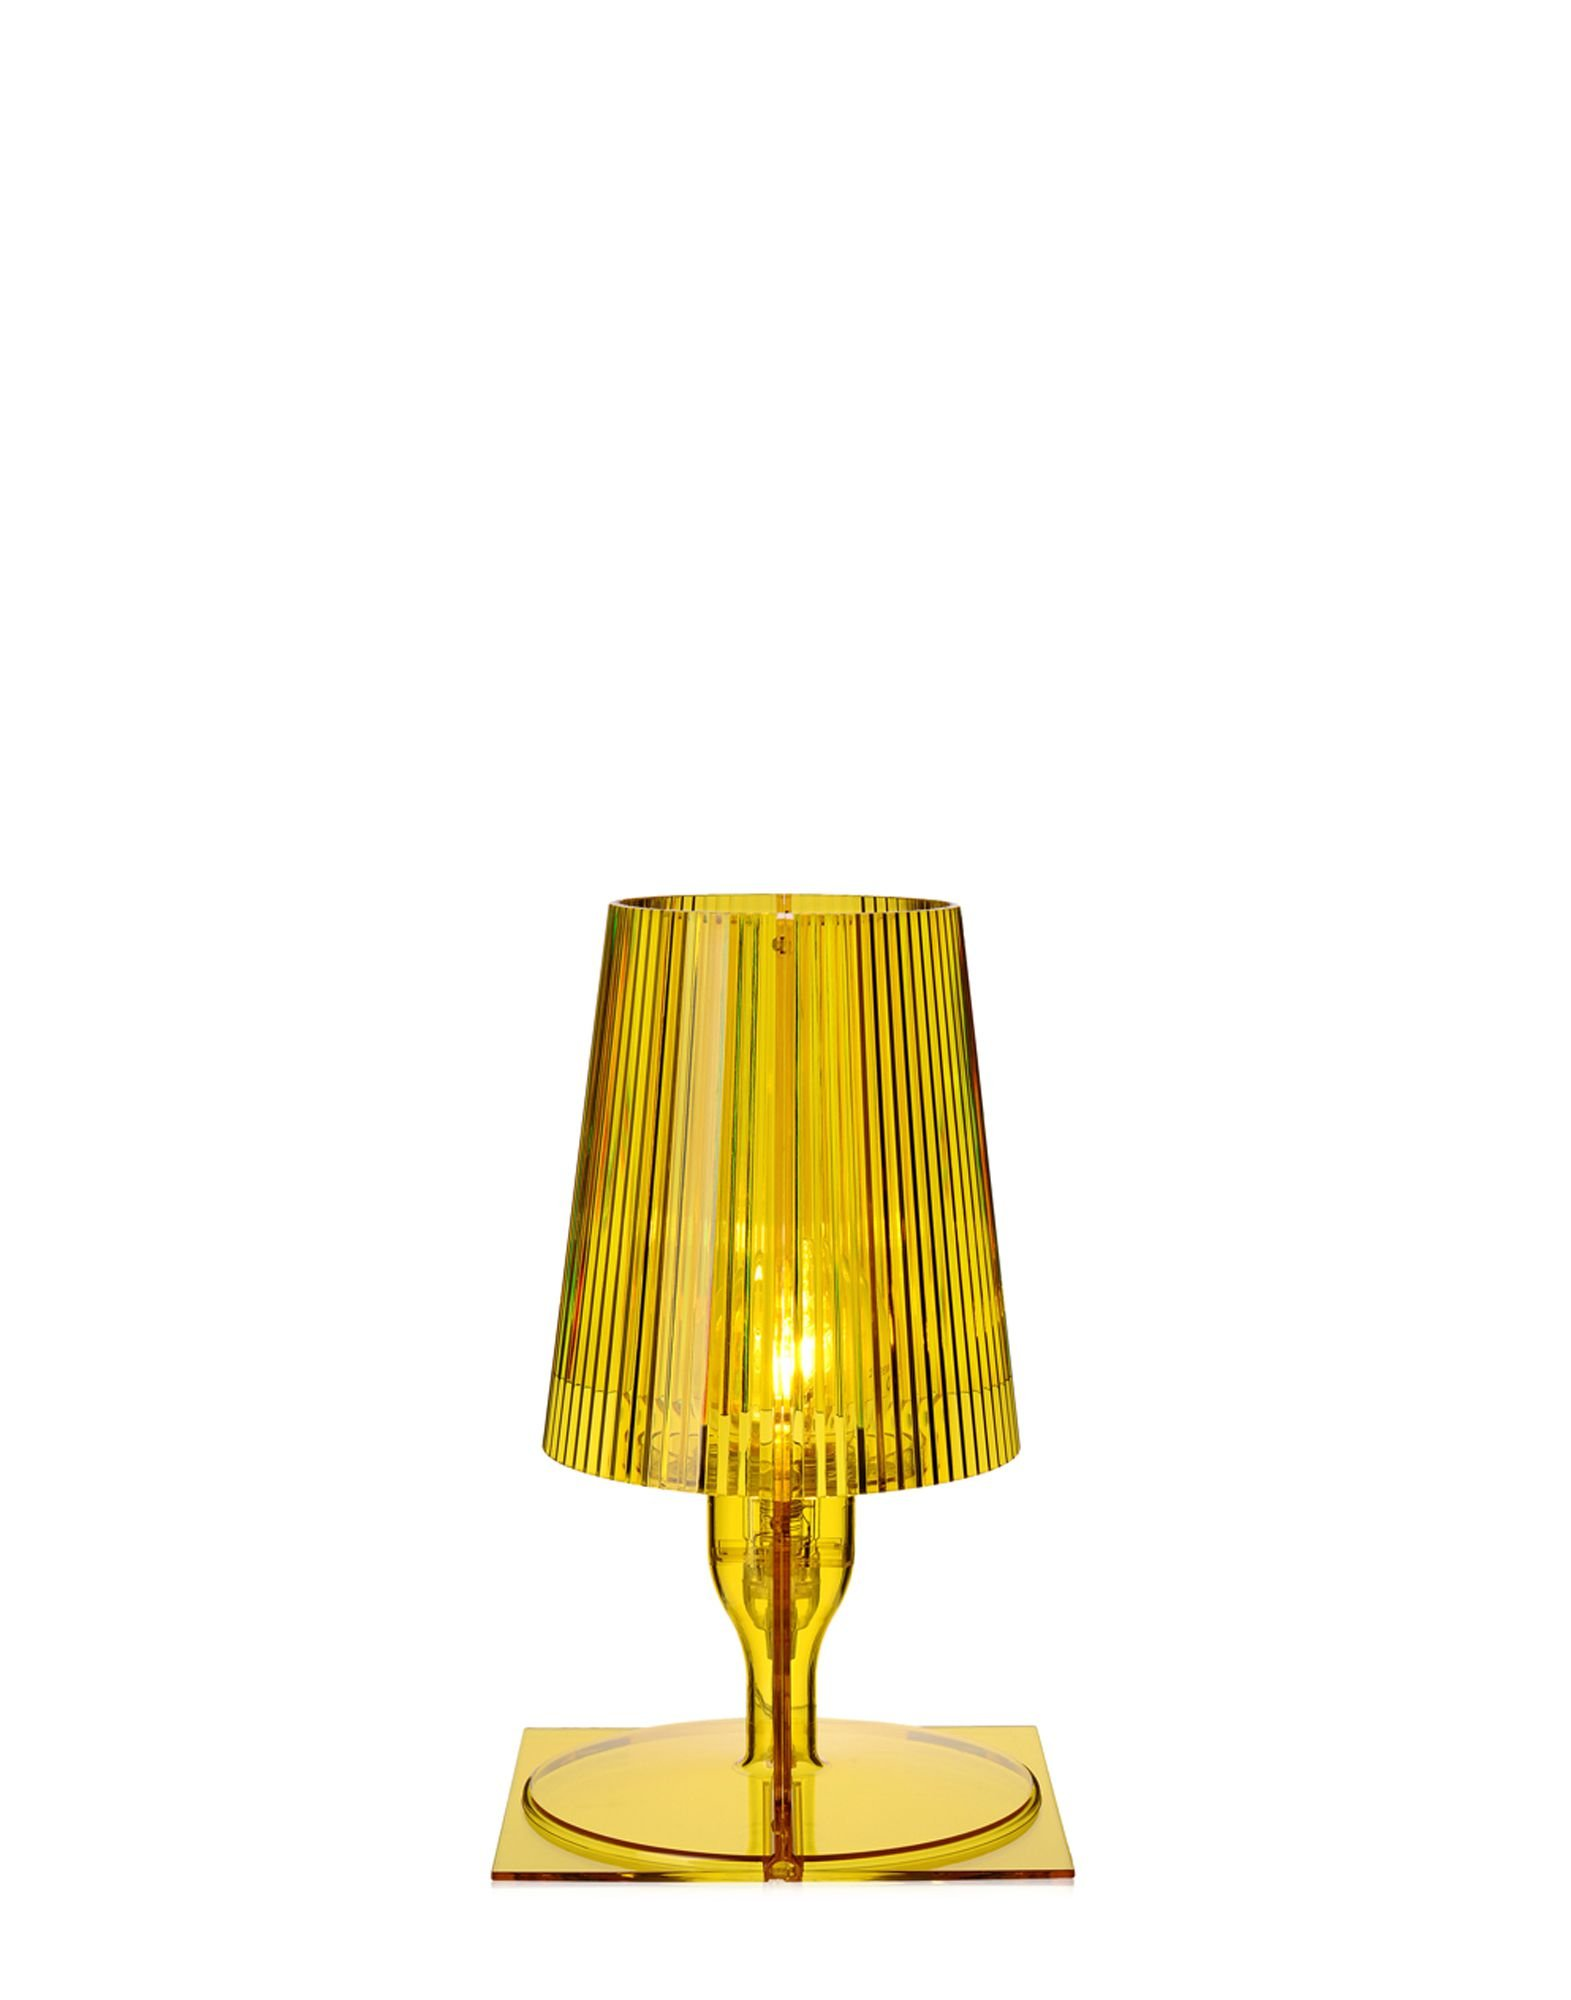 Take Table Lamp lighting from Kartell, designed by Ferruccio Laviani